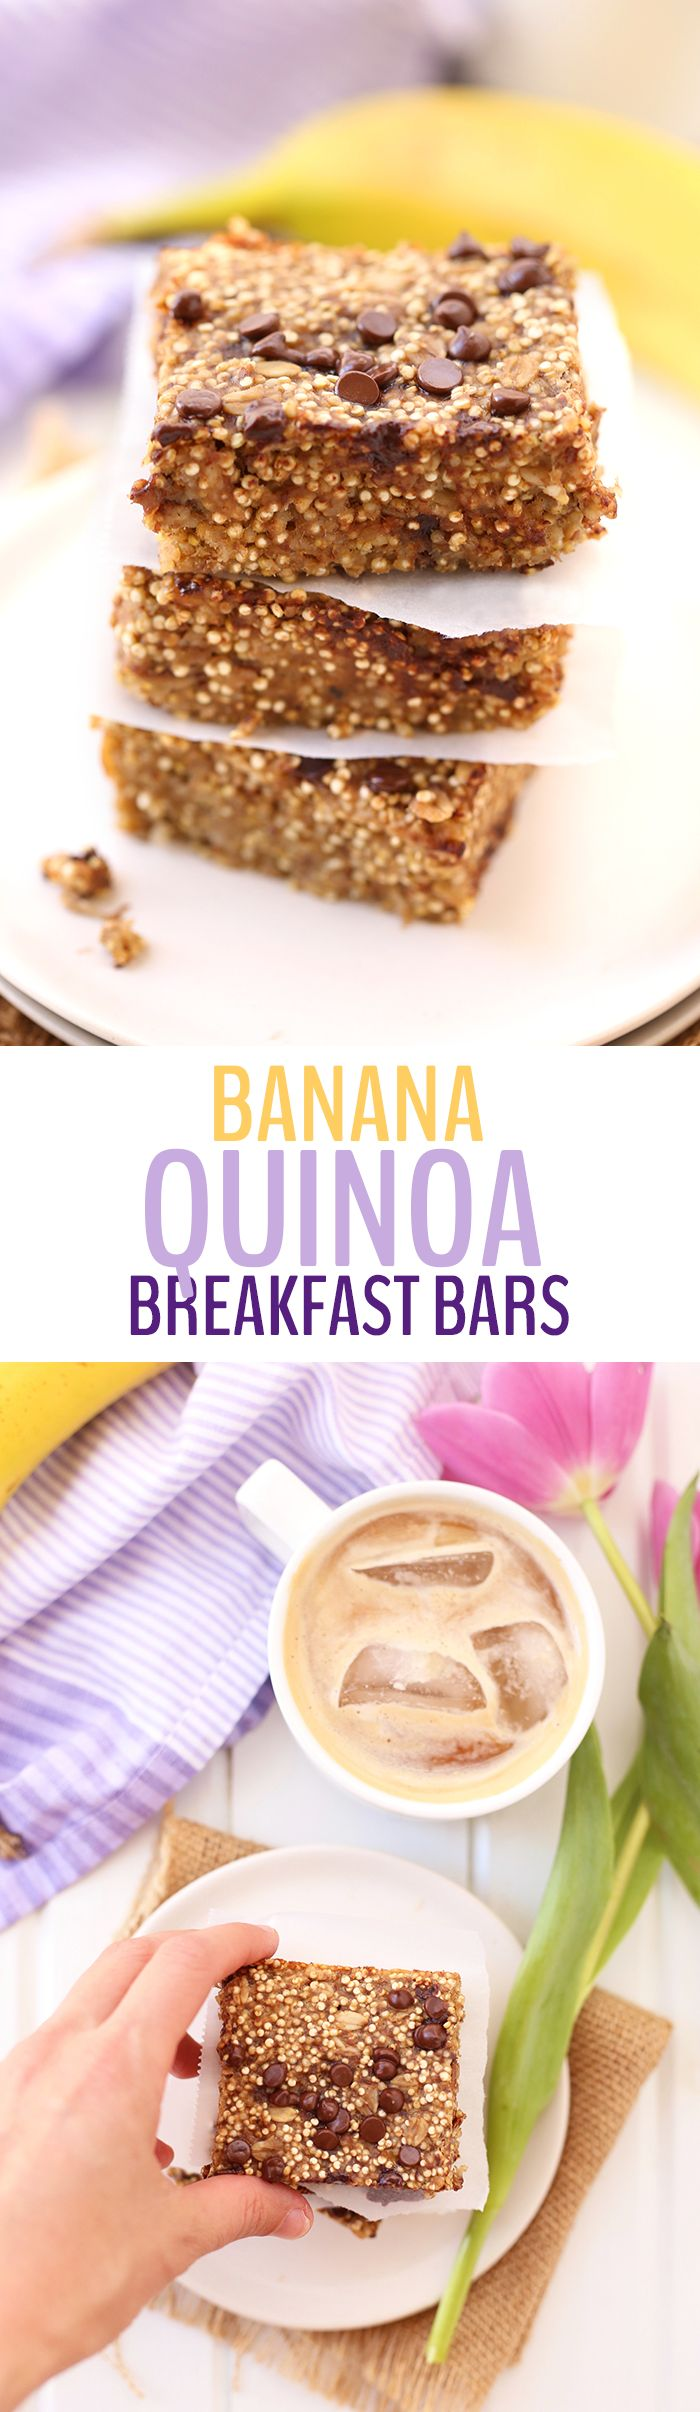 Get your quinoa first thing in the morning with these Banana Quinoa Breakfast Bars. An easy, make-ahead breakfast that is vegan, refined-sugar-free and absolutely delicious.  | healthy recipe ideas @xhealthyrecipex |